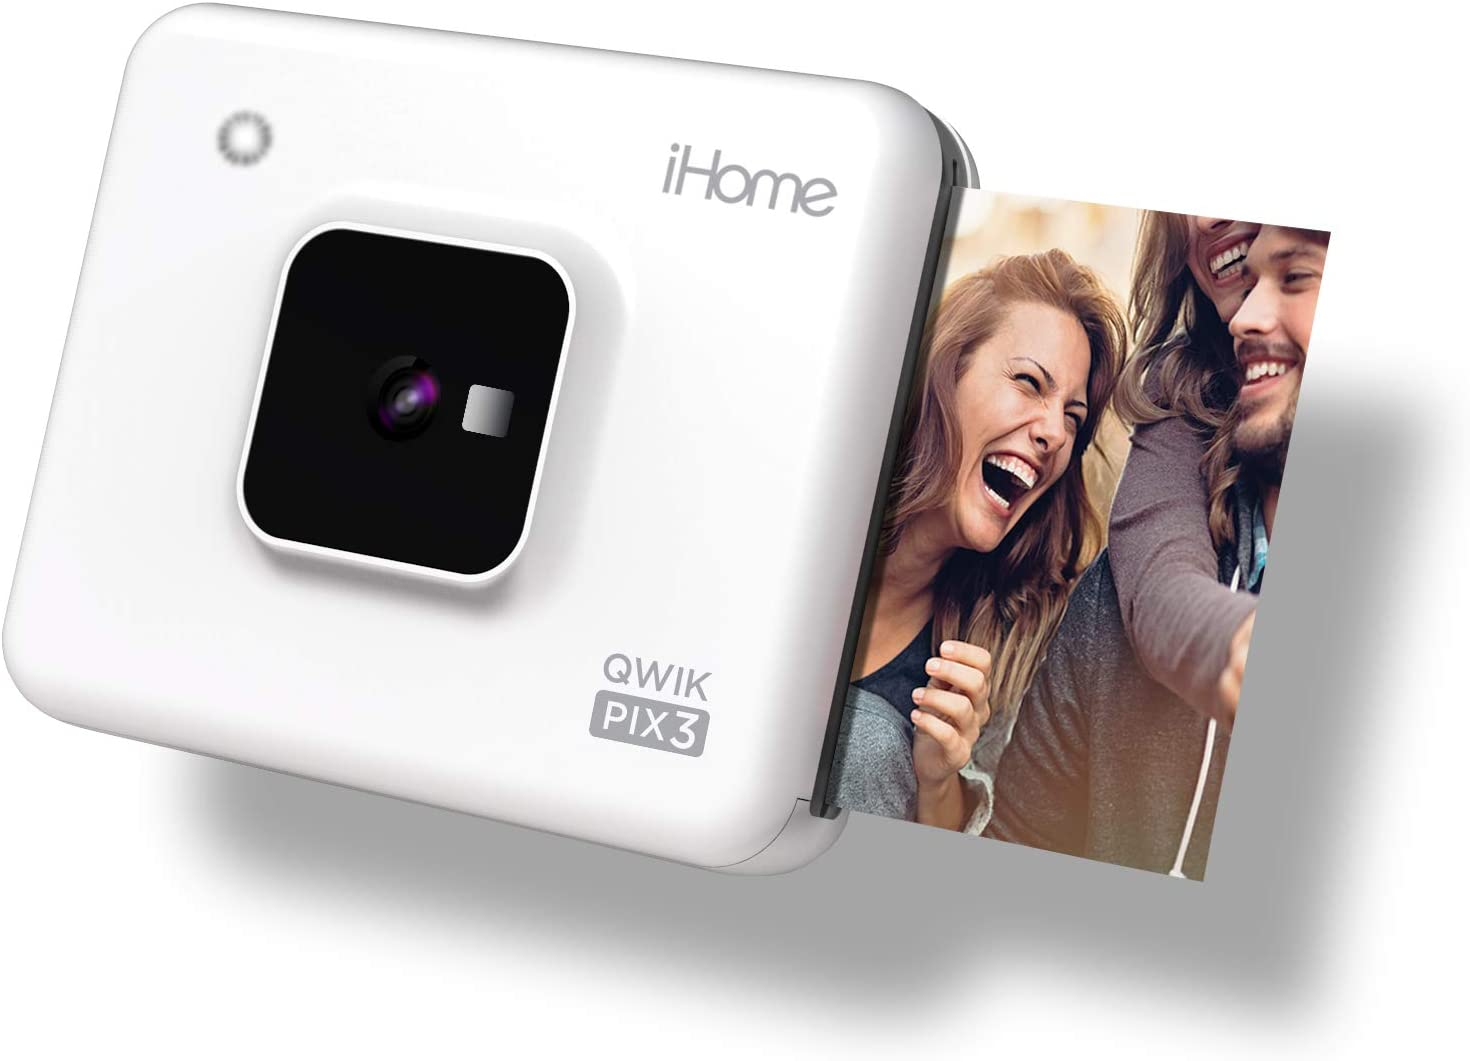 Amazon Opens Pre-Orders For iHome Square QwikPix3 Instant Print Camera